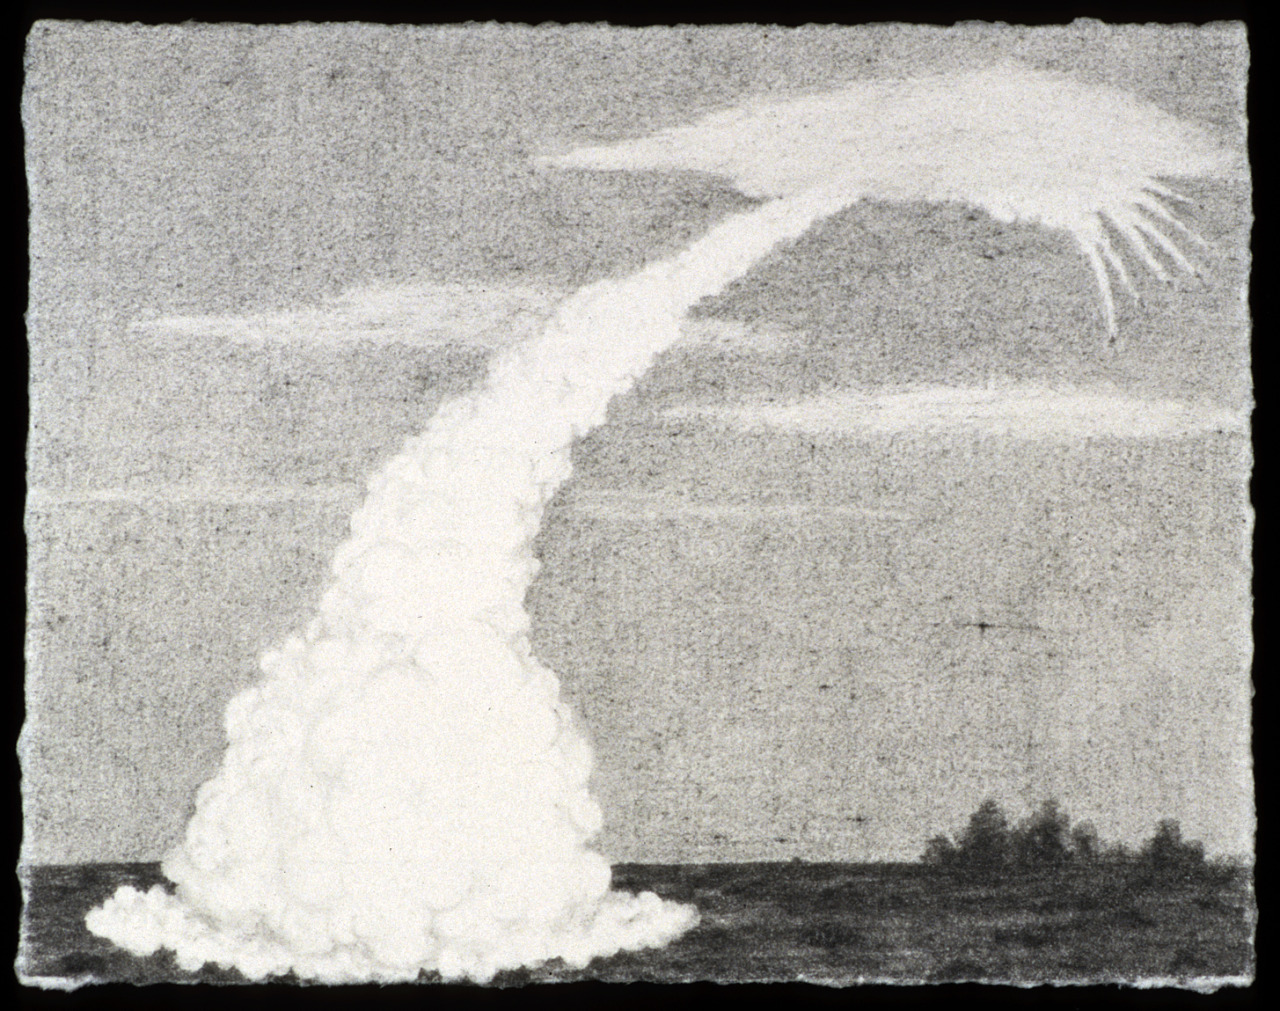 "Launch Graphite 3"" x 4"" 2003 Scott Espeseth"